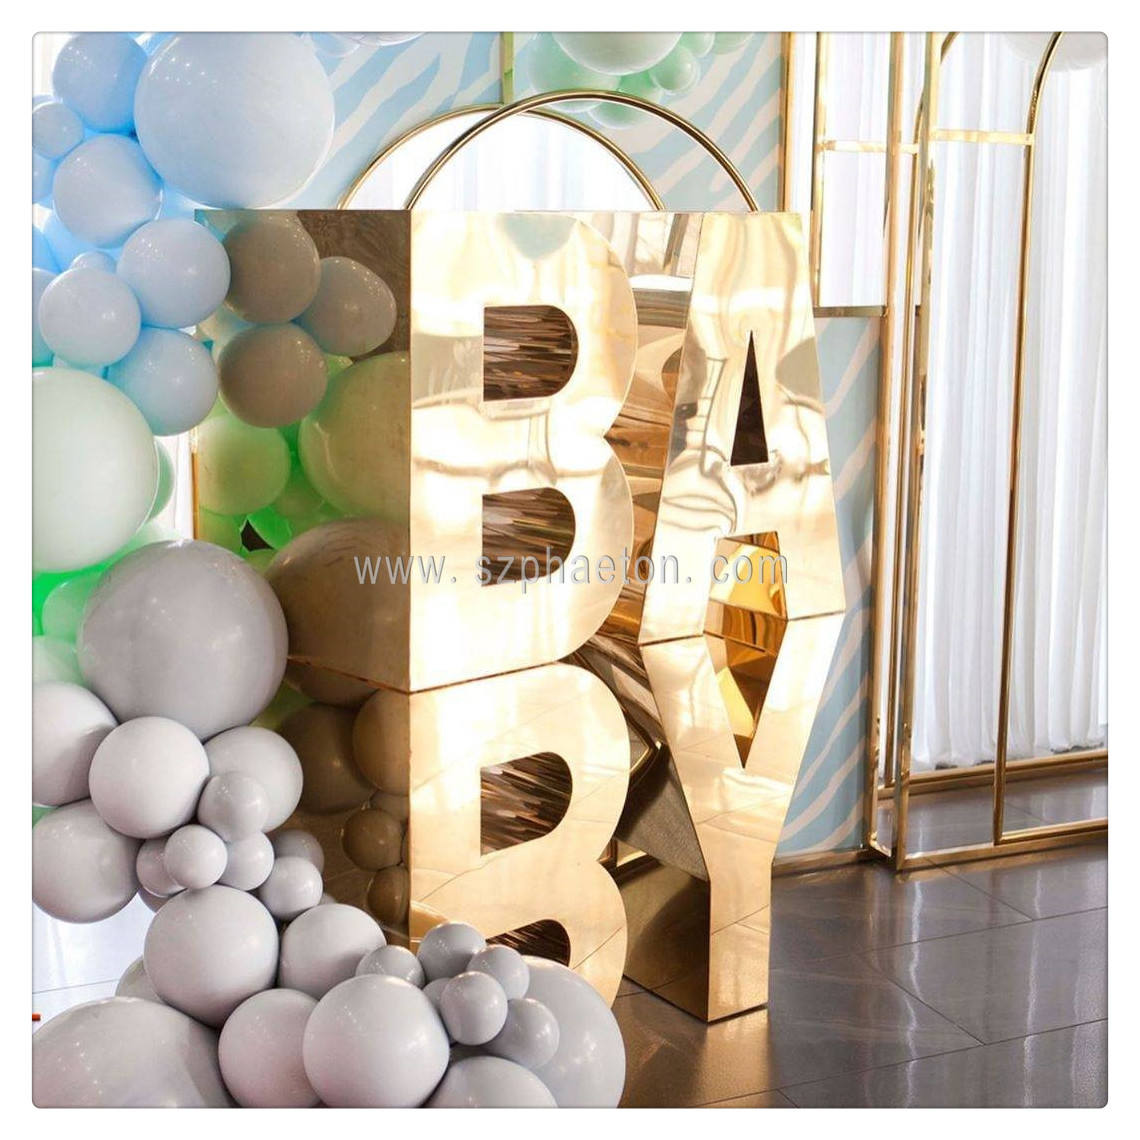 Party supplies letter table for cake / dessert display, mirror gold letter table BABY for baby shower decoration